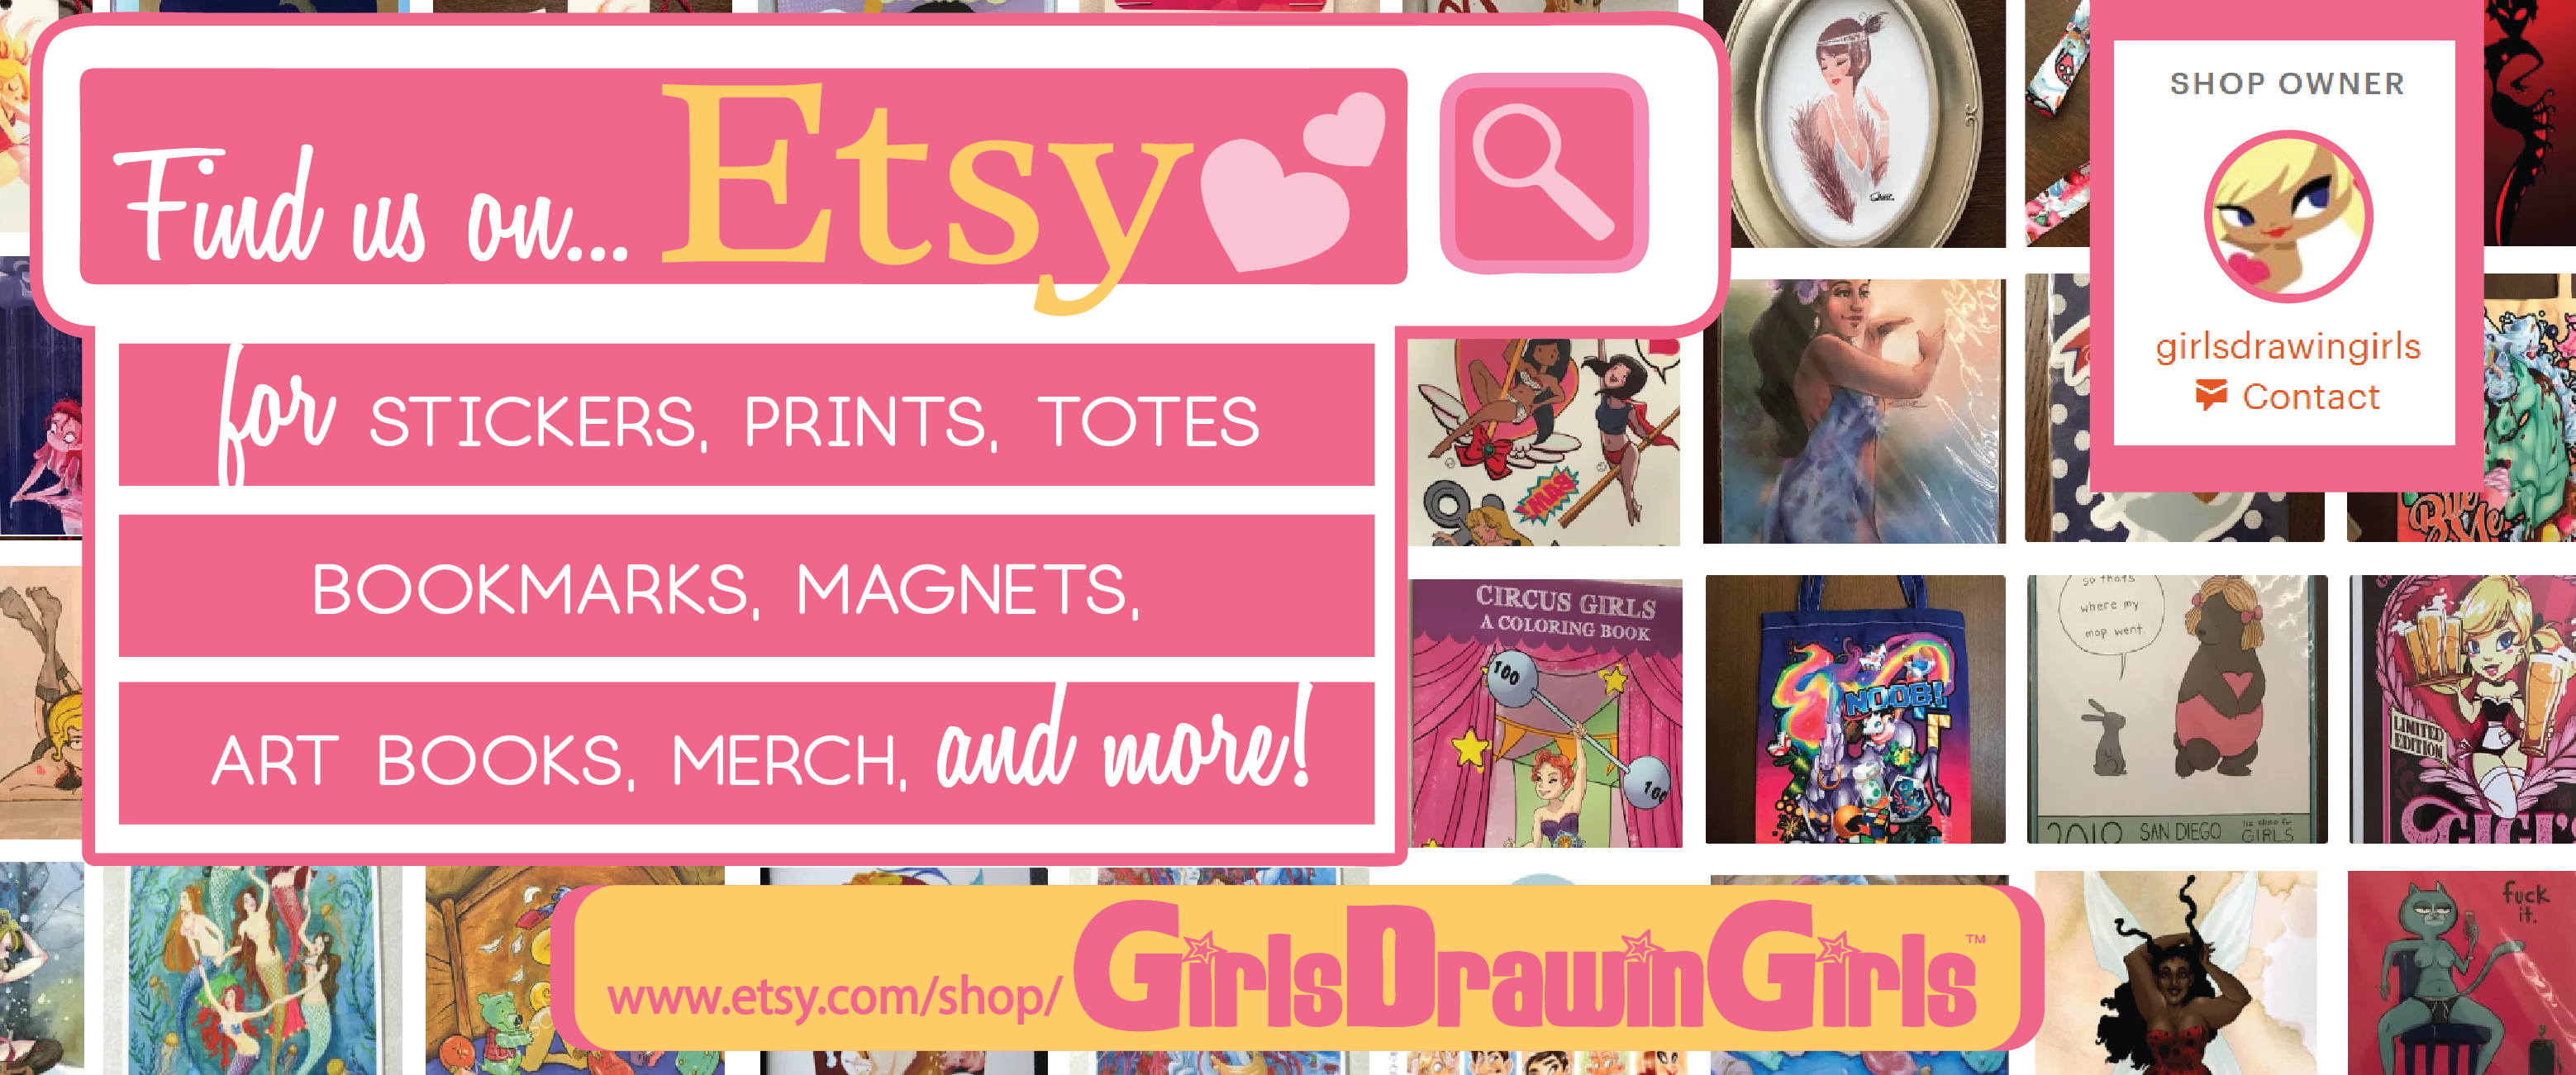 Girls Drawin Girls Etsy Store Banner - GDG, Tarot Decks Limited